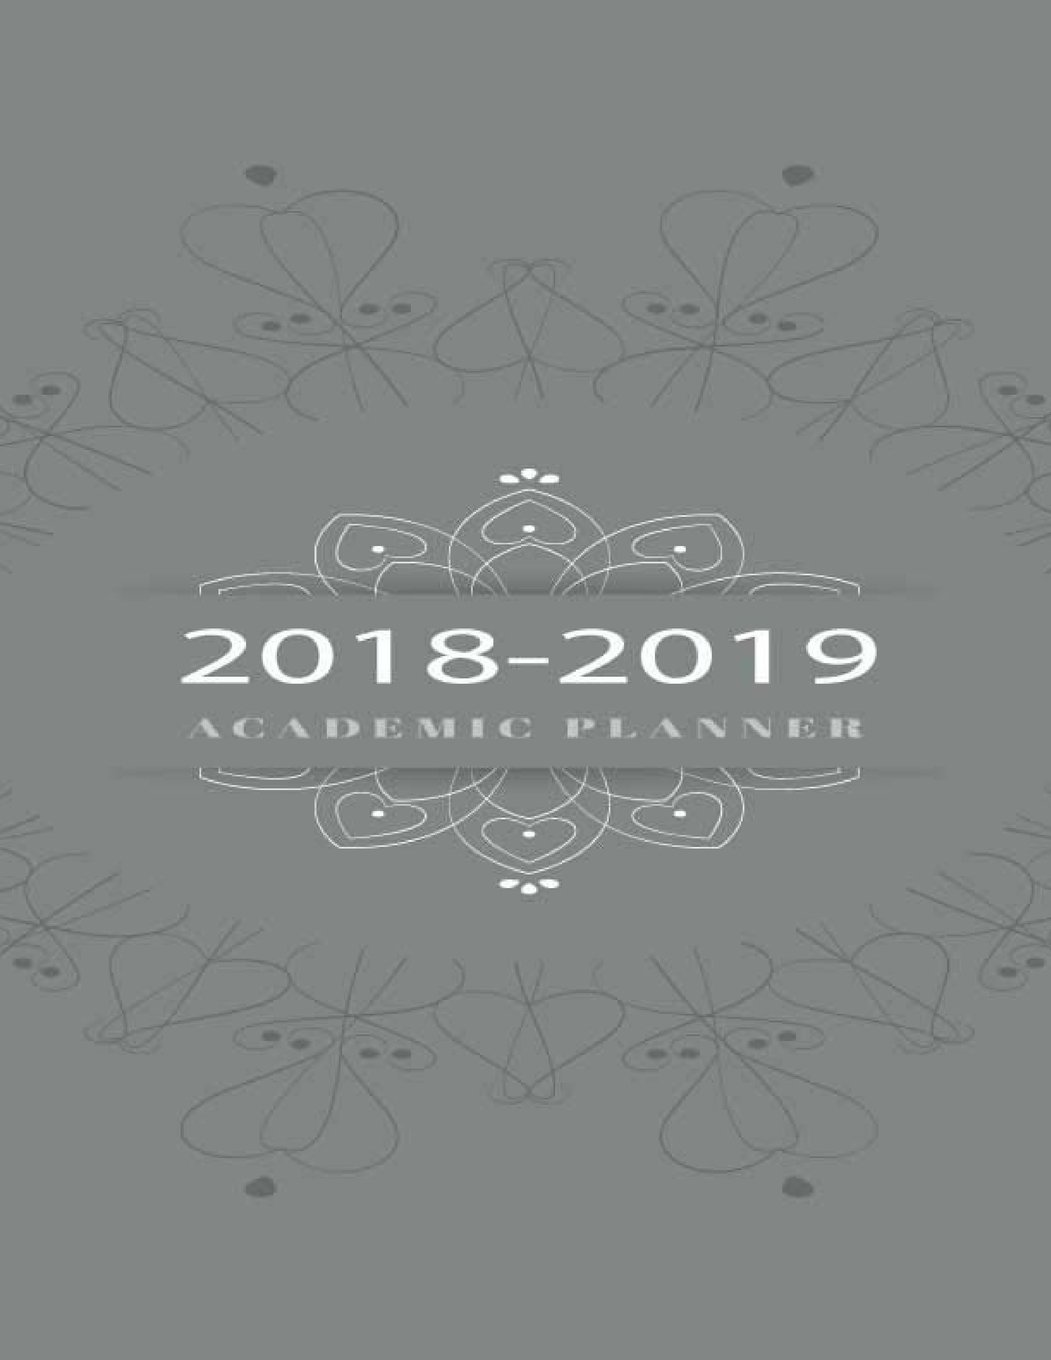 Download Academic Planner 2018-2019: Calendar Agenda Schedule Organizer Your Daily Weekly And Monthly Planner (August 2018 - July 2019). 12 Months, Log Book ... Homeschool Journal Notebook Diary) (Volume 4) ebook